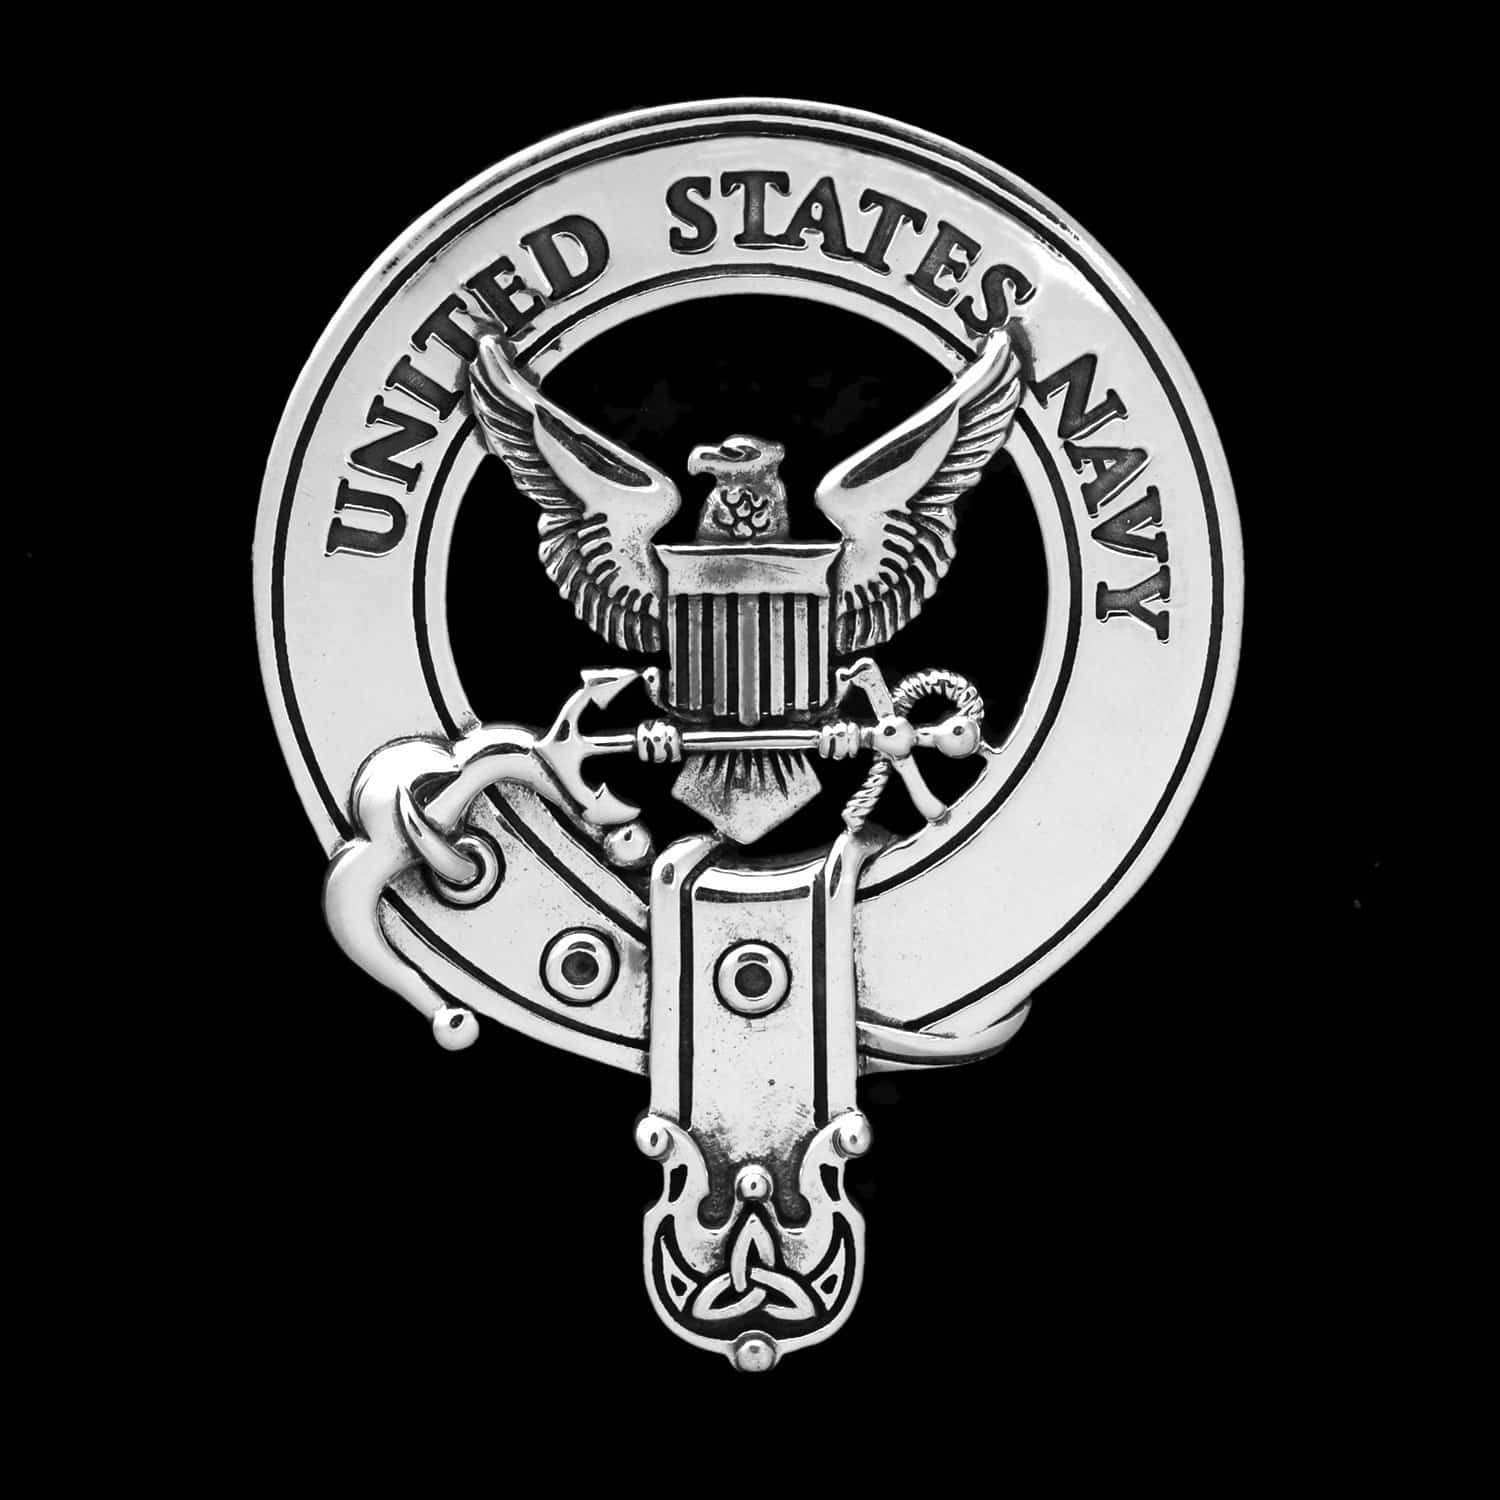 United States Navy Bag Pipers Crest Badge 92.5 Sterling Silver ©celticjackalope.com